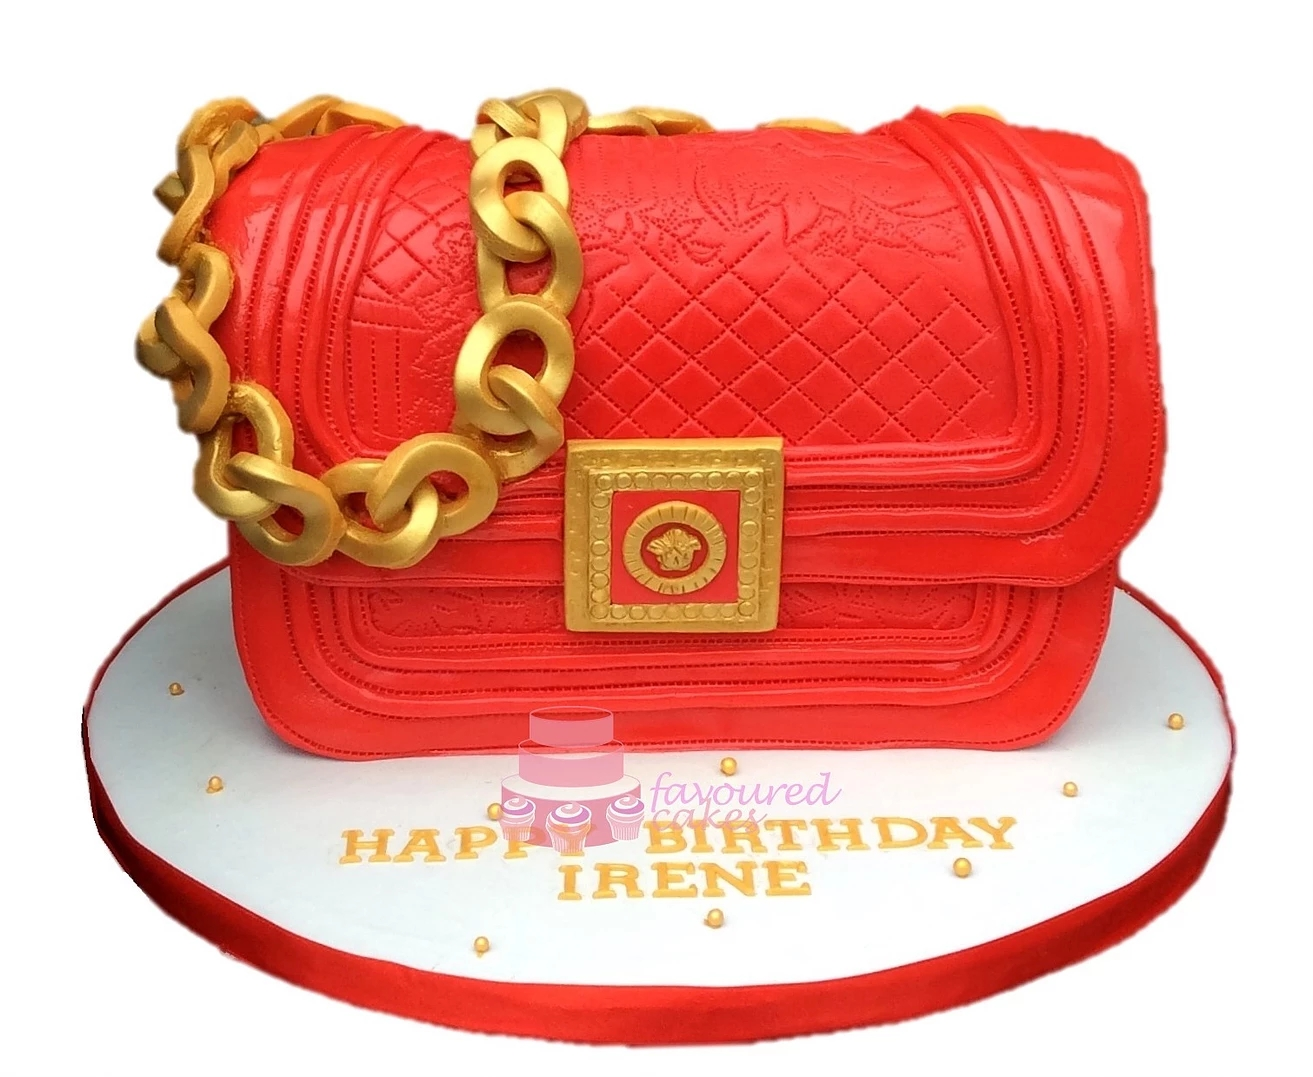 Versace Quilted Bag Cake VB01